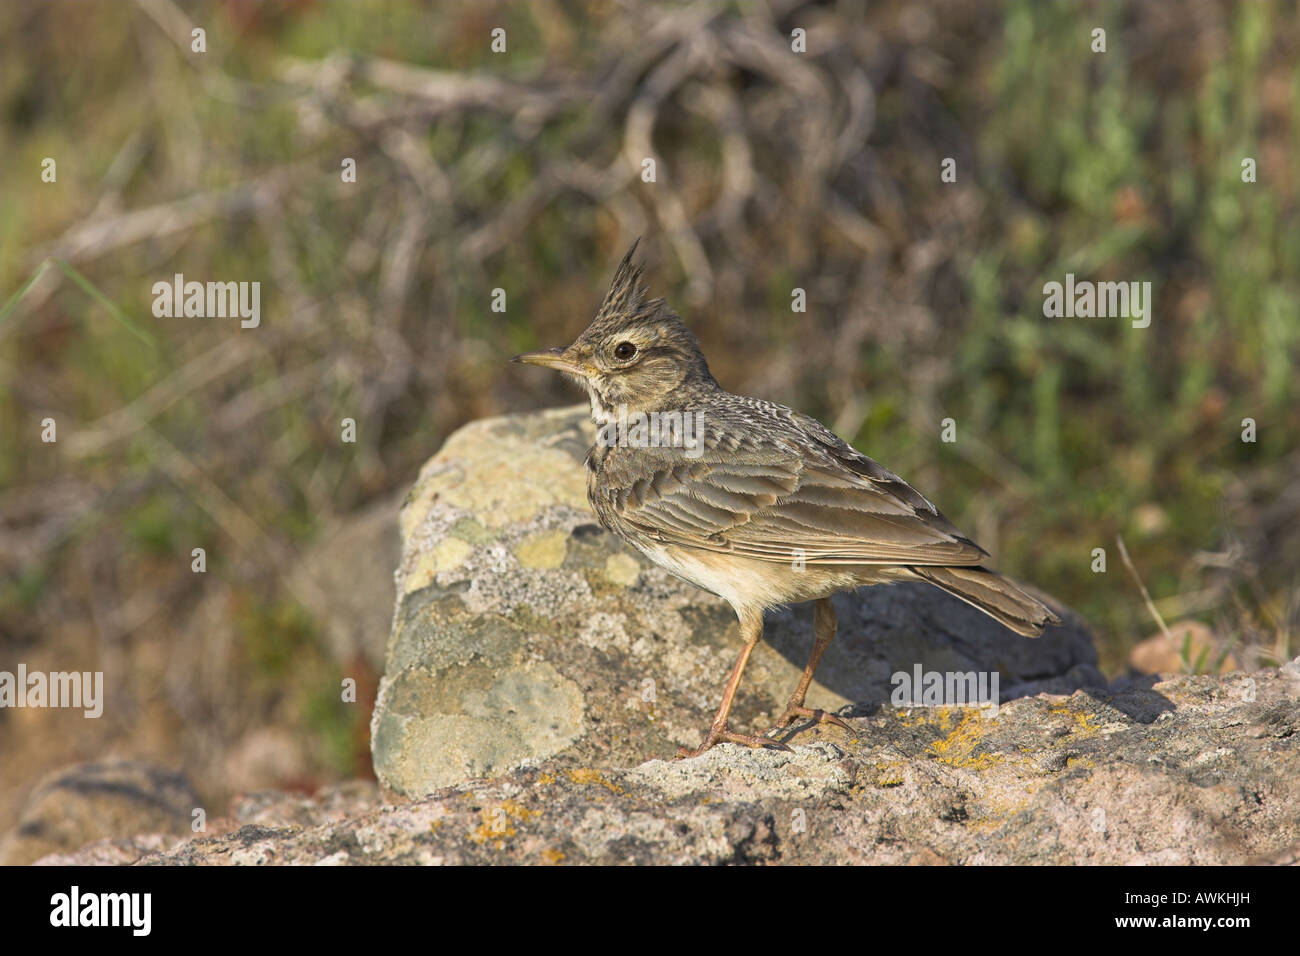 Crested Lark Galerida cristata perched on rocks near nest site in Lesvos, Greece in April. Stock Photo